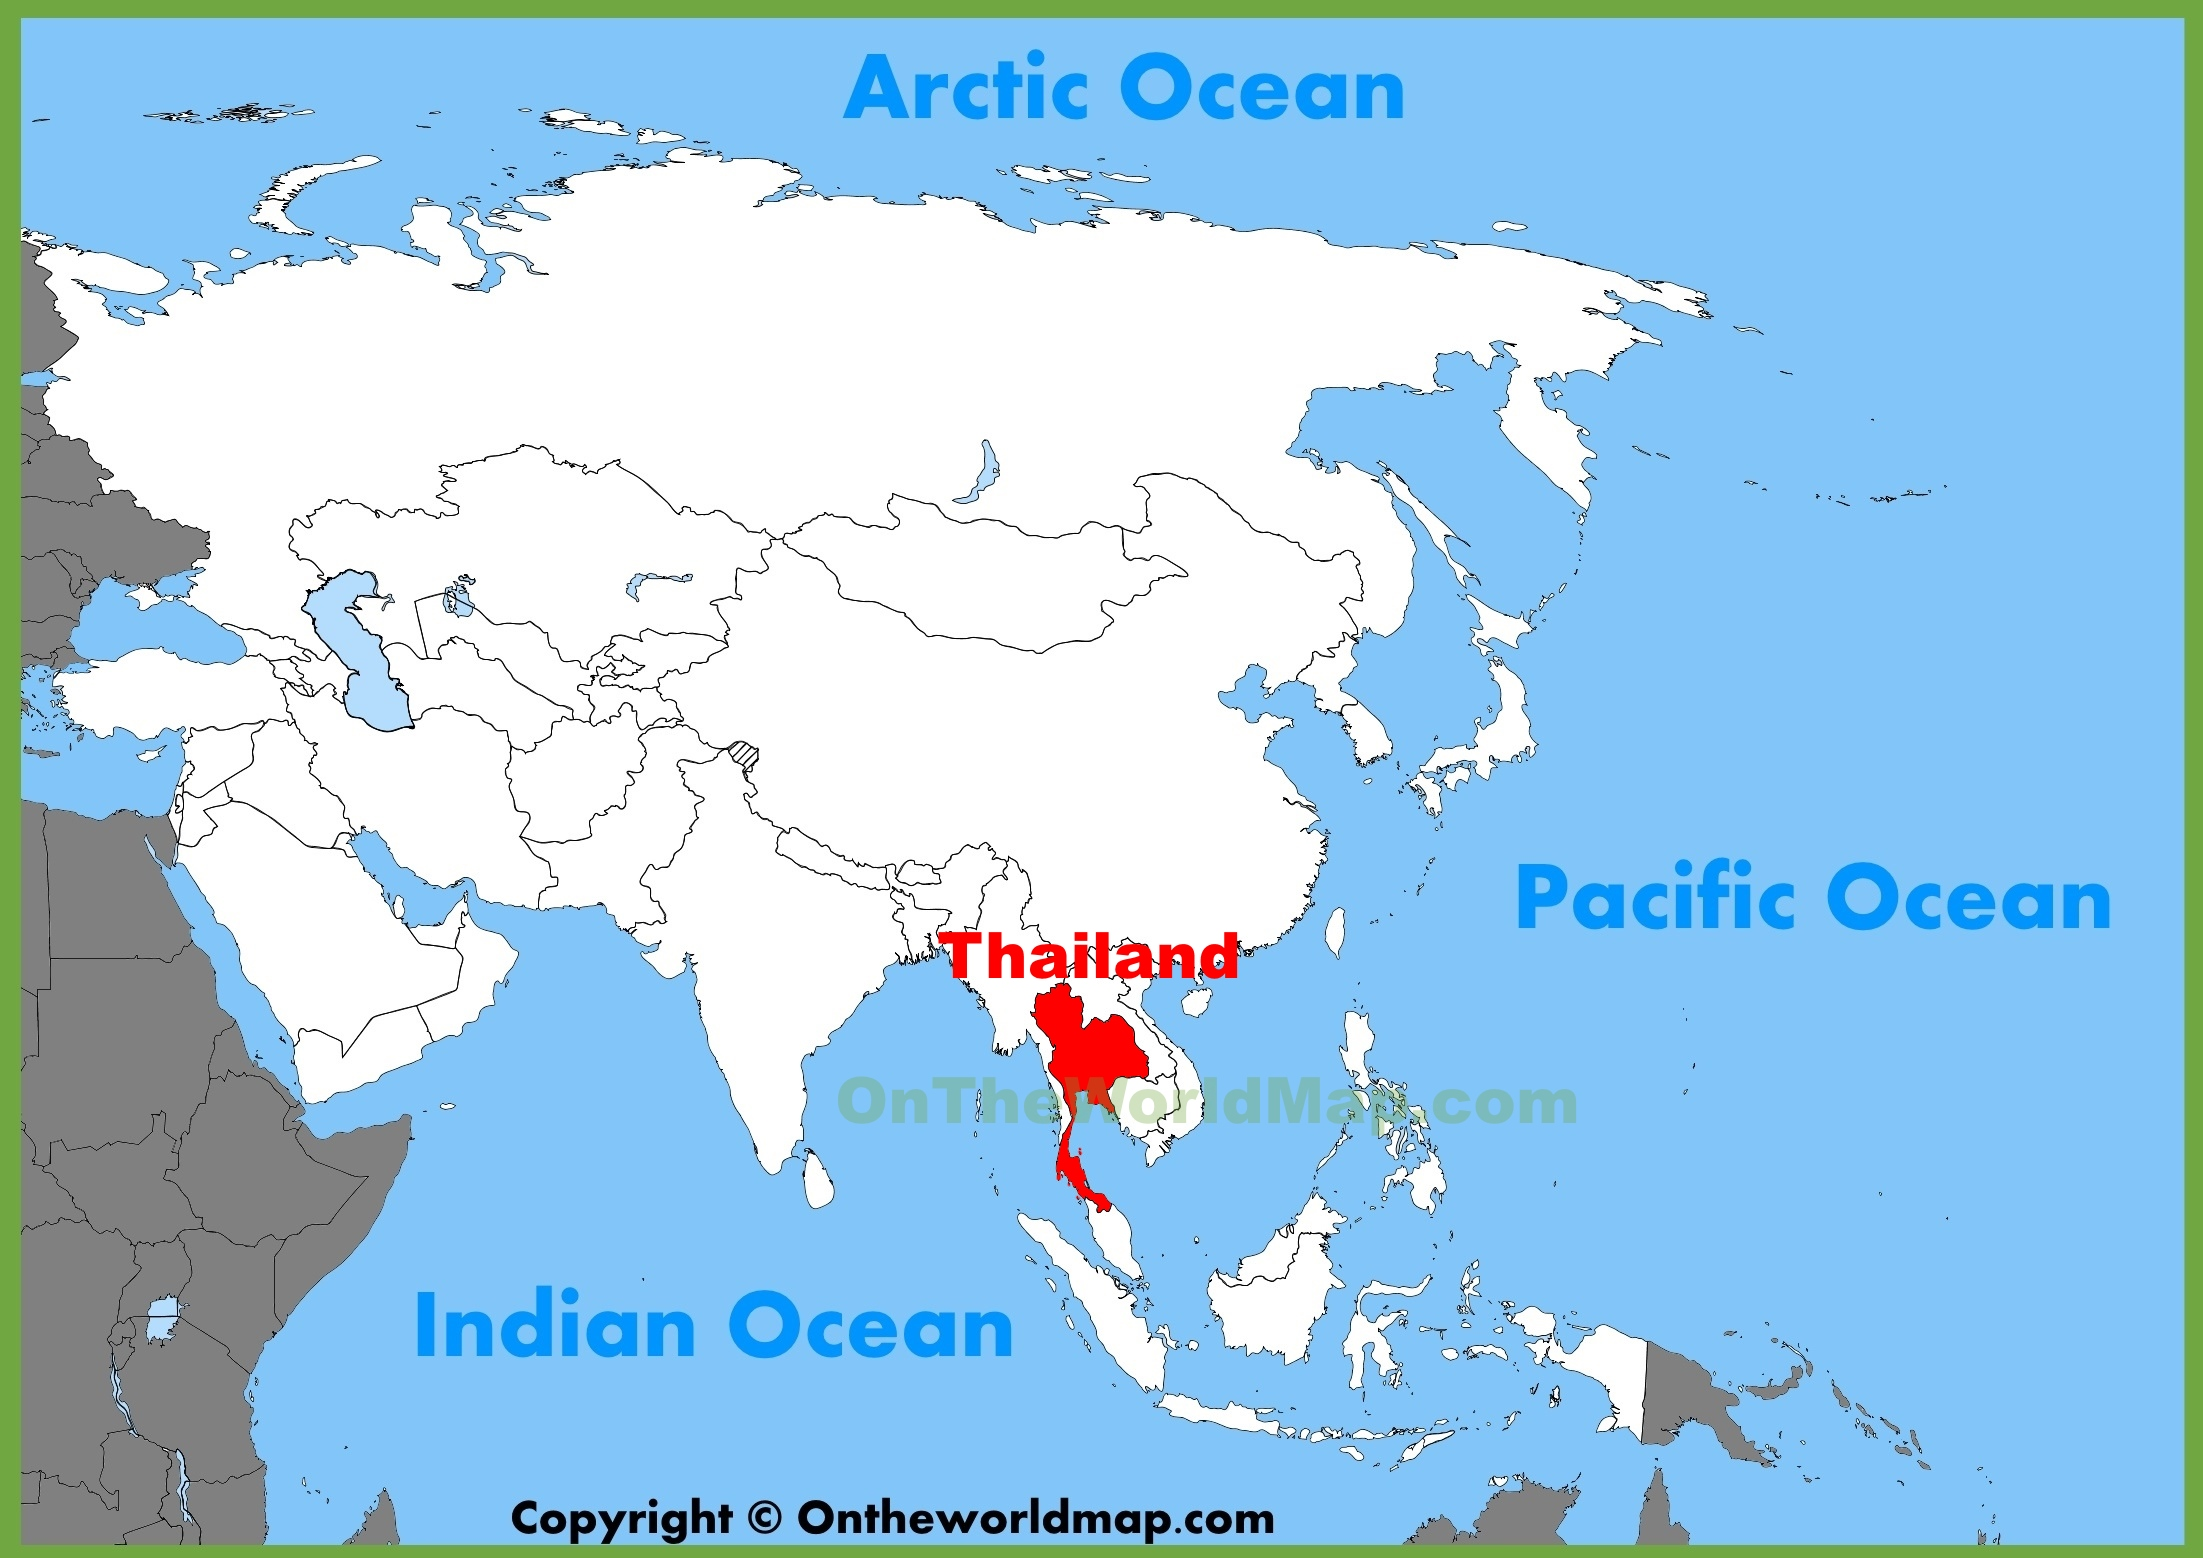 Thailand location on the Asia map